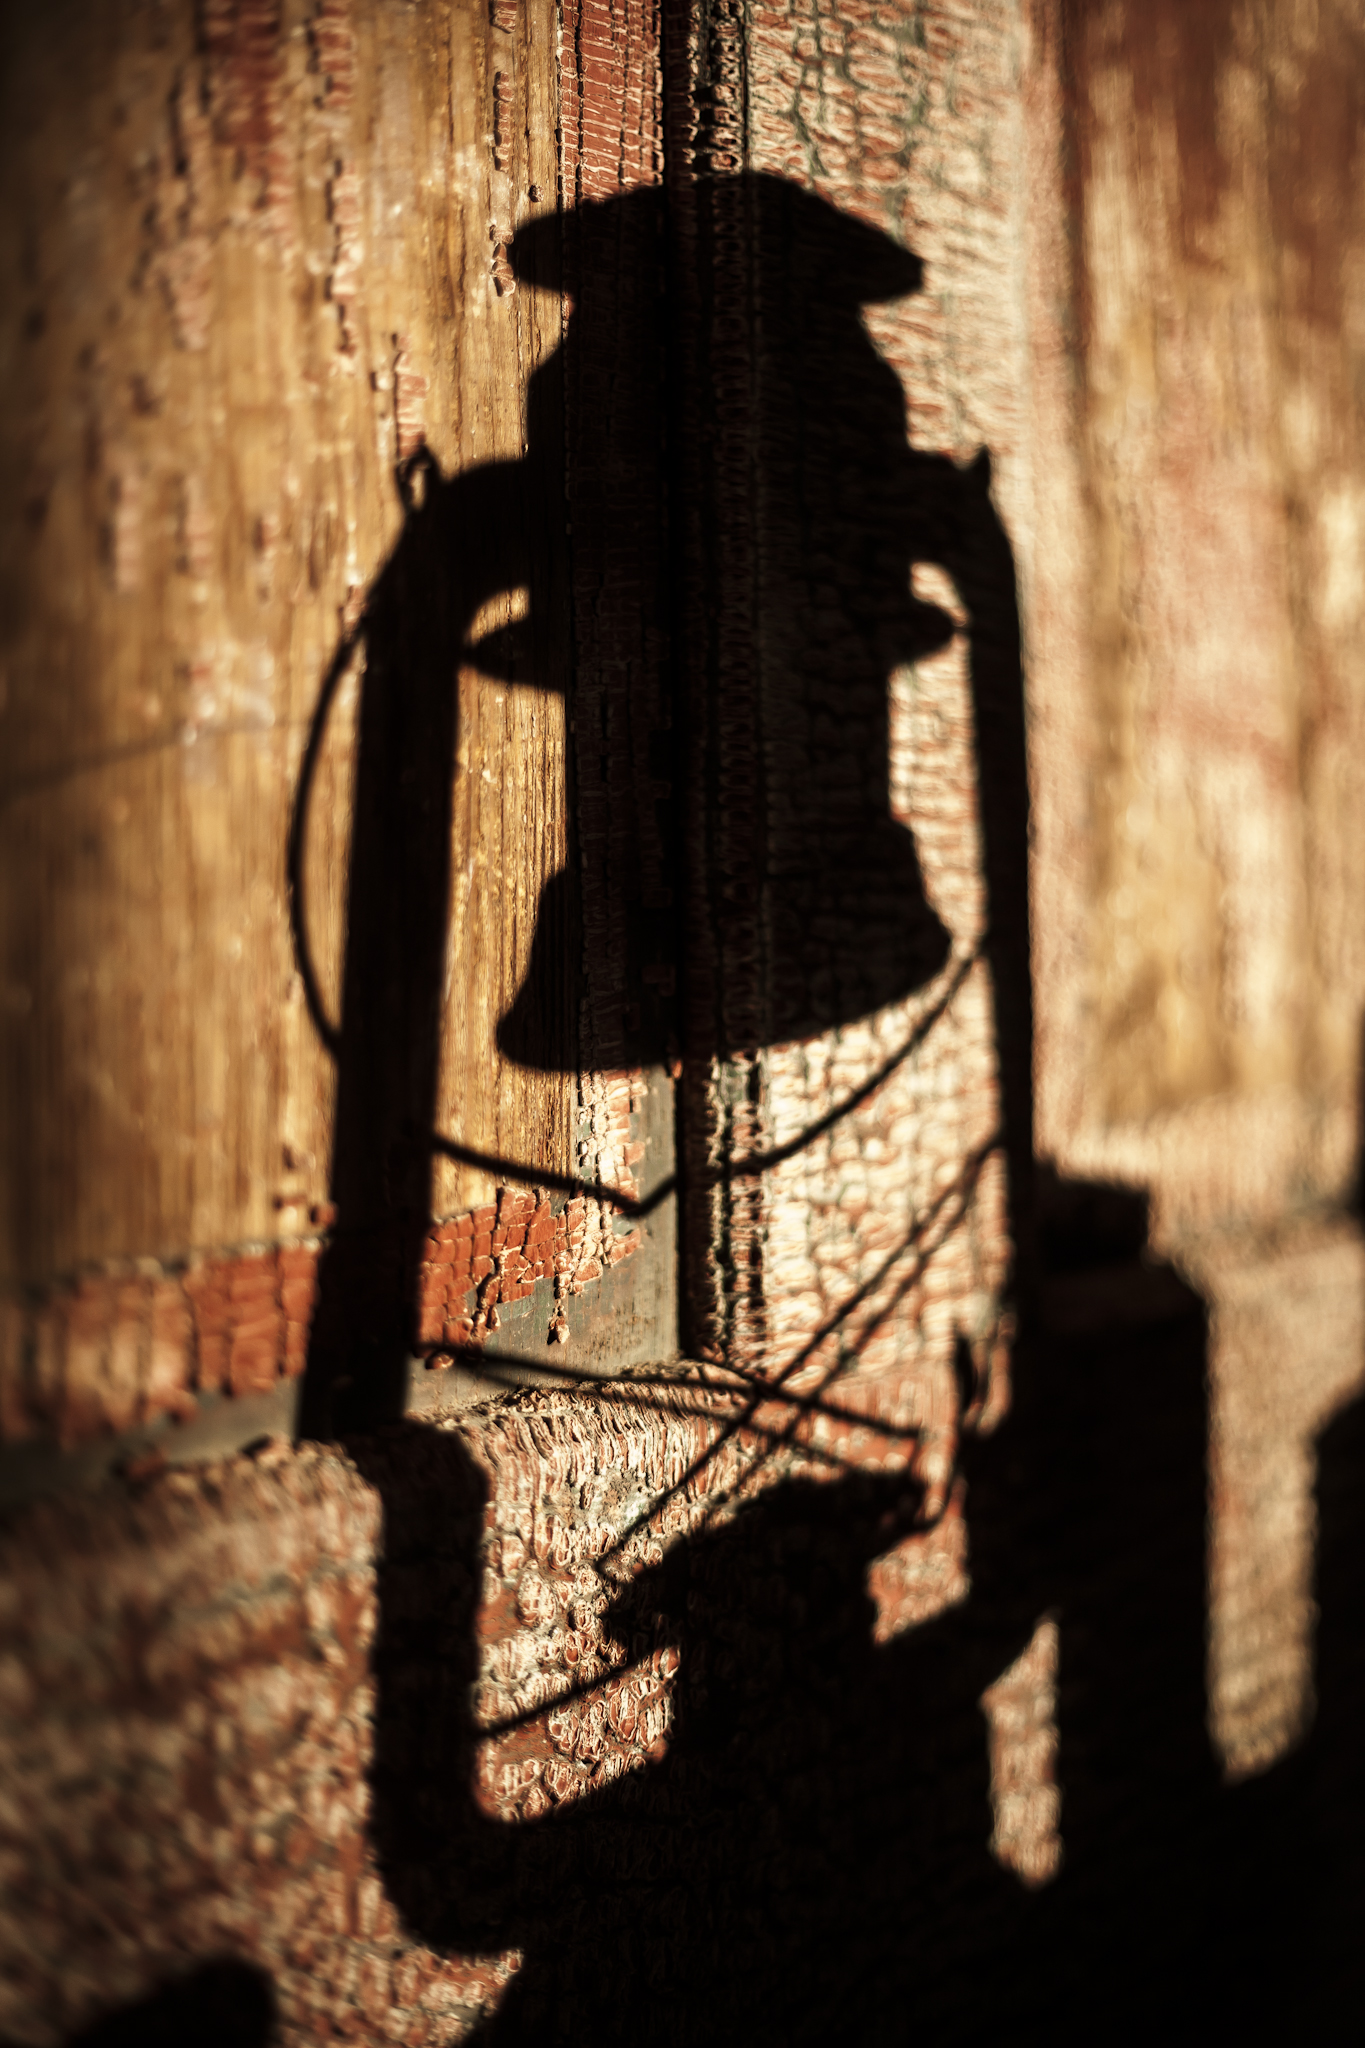 Distressed Door with a Shadow of a Hurricane Lamp Cast upon it